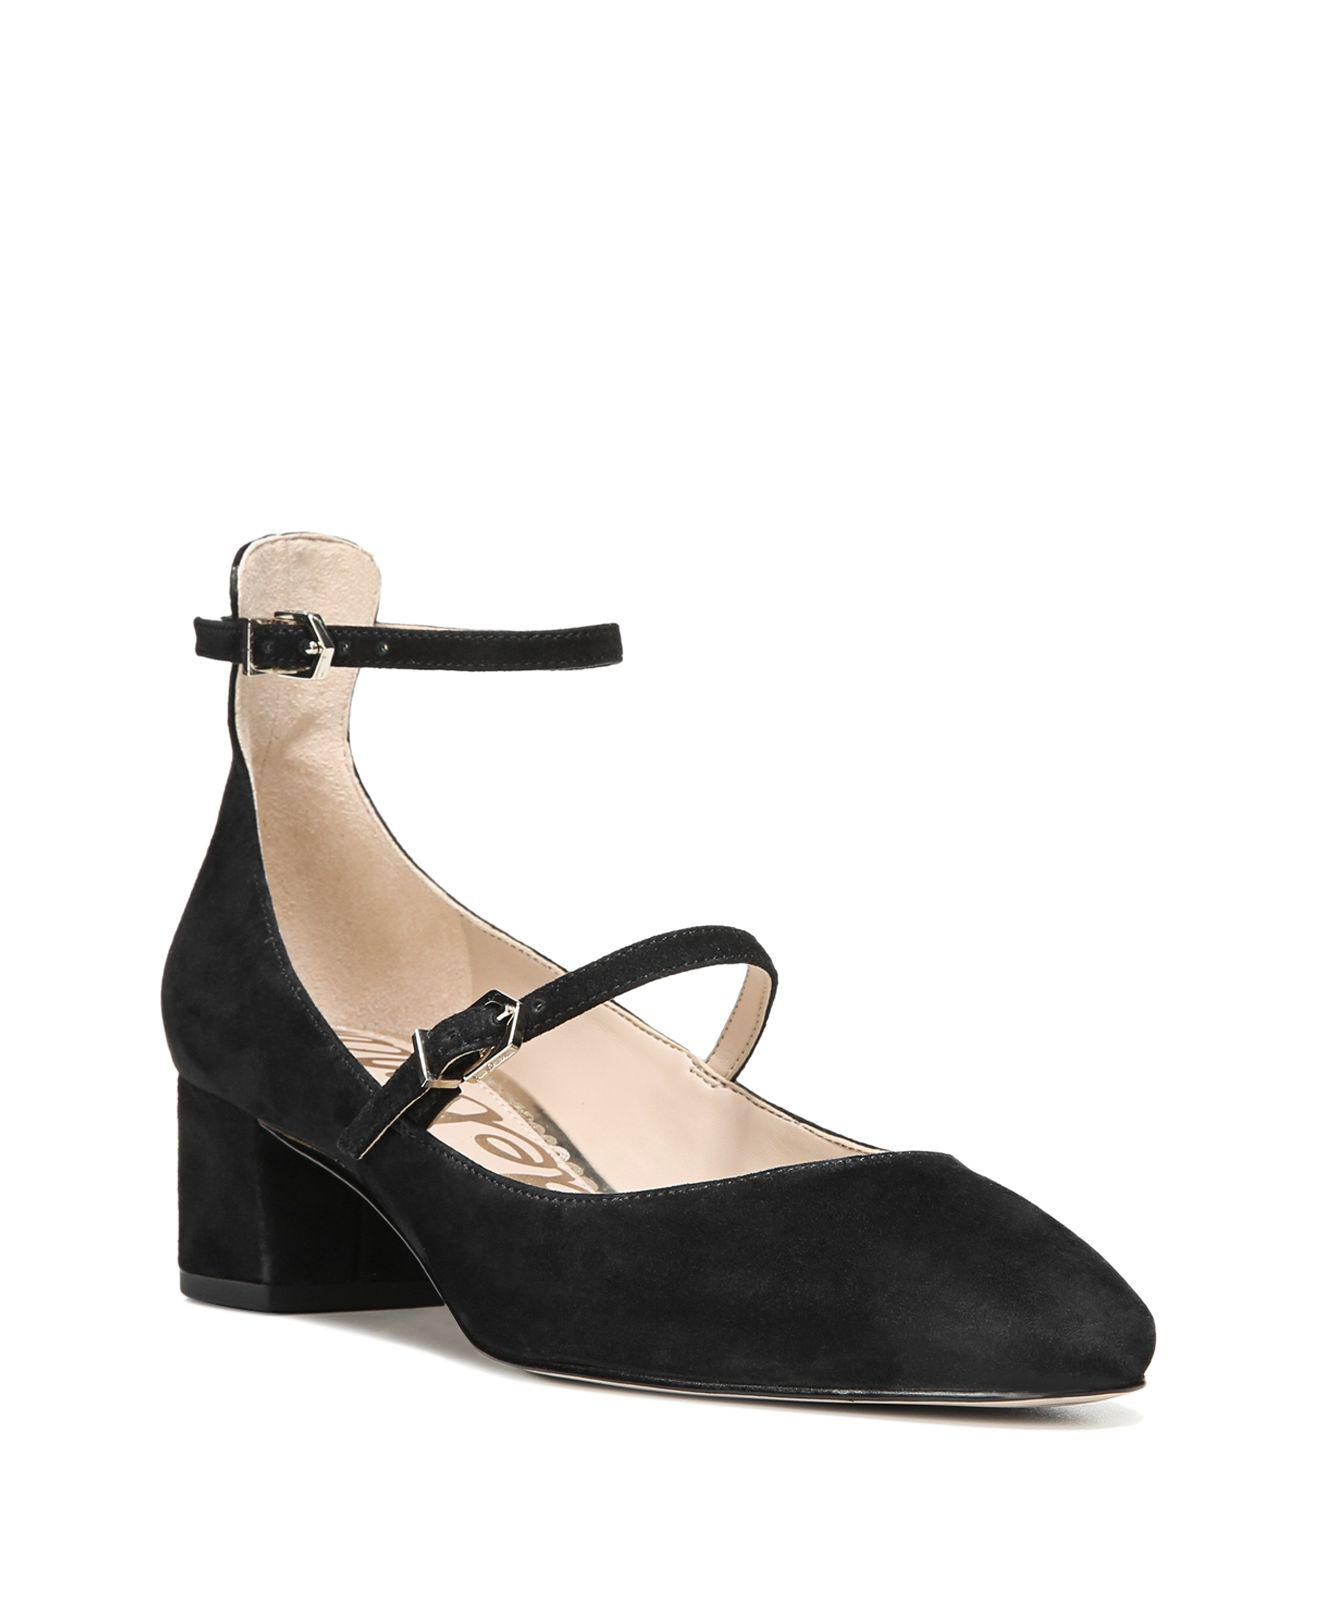 ab9b92e64e16 Sam Edelman Lulie Suede Ankle Strap Mary Jane Pumps in Black - Lyst